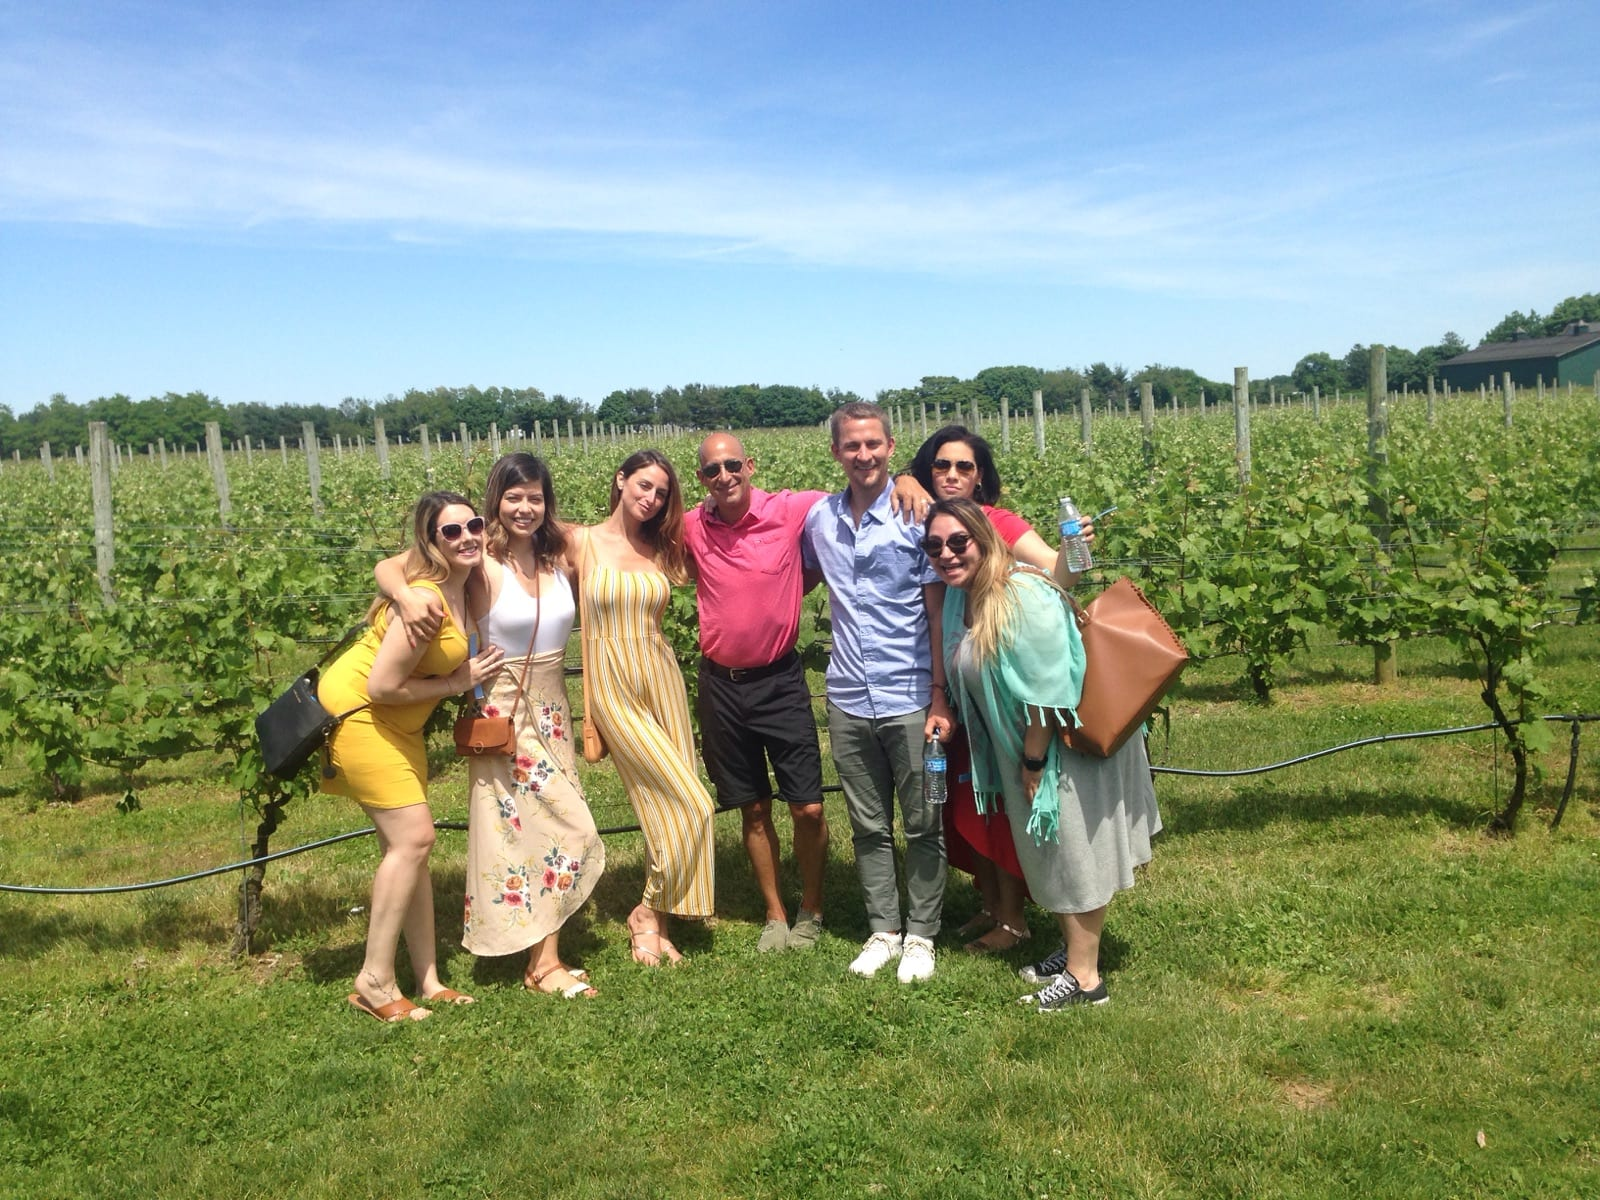 Birthday Wine Tour in Long Island NY